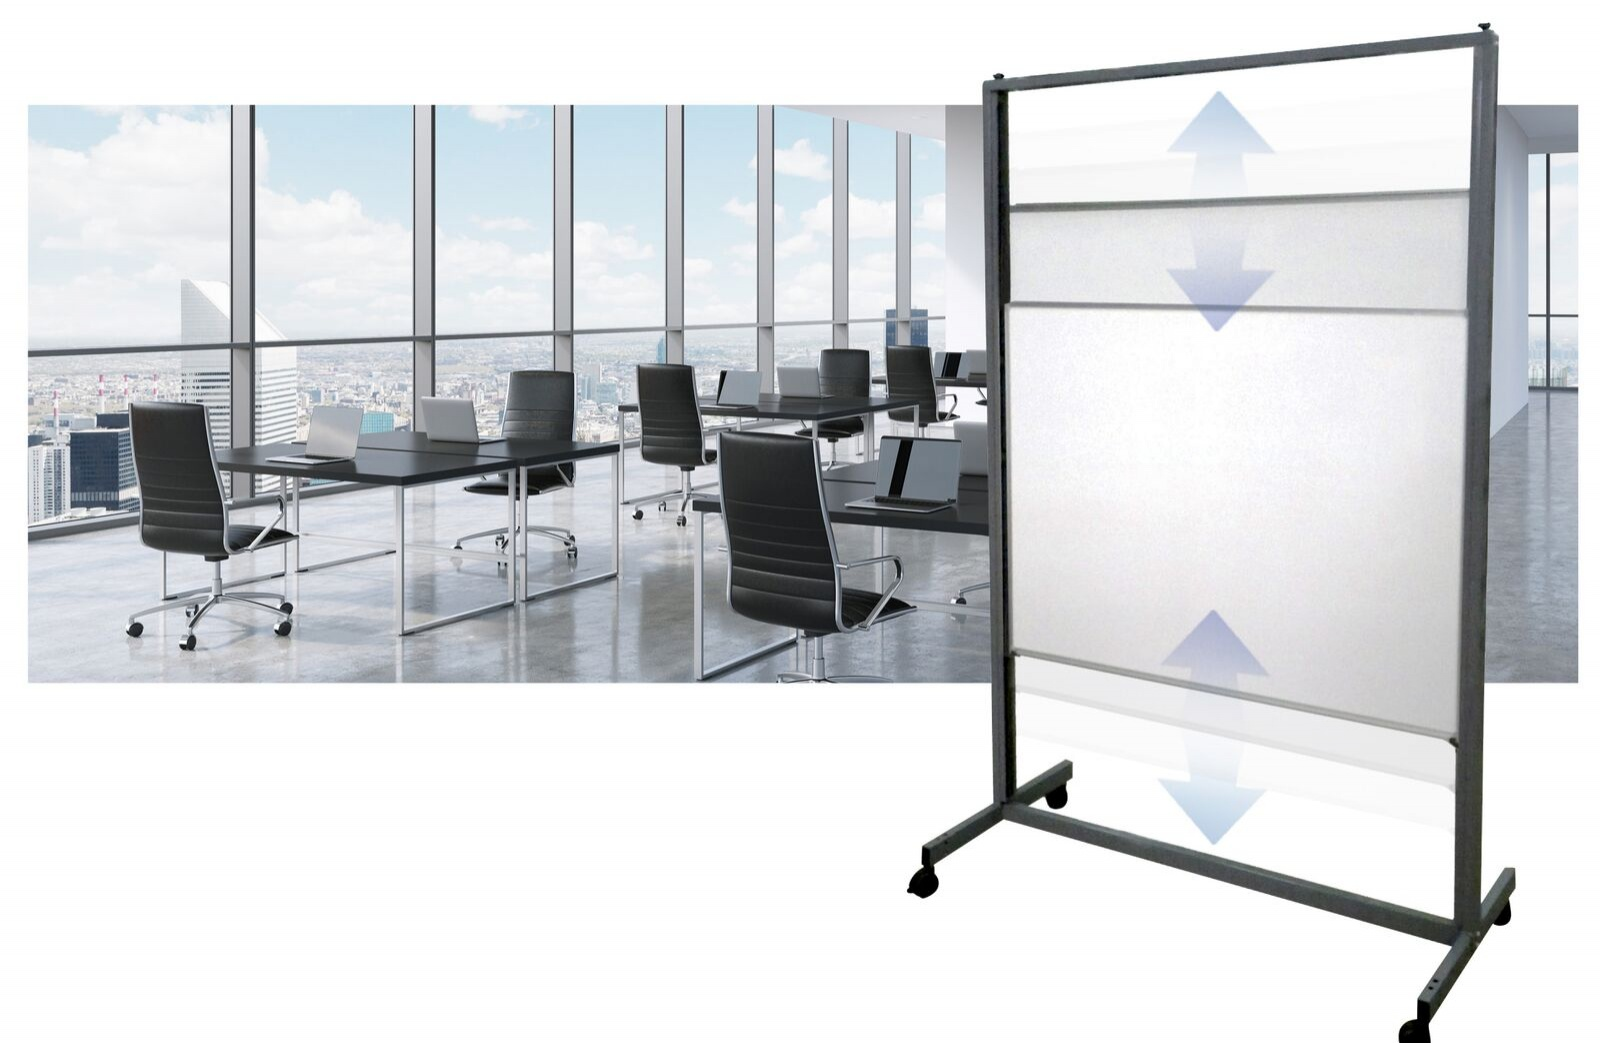 Asphire Vertical Sliding Mobile Whiteboard